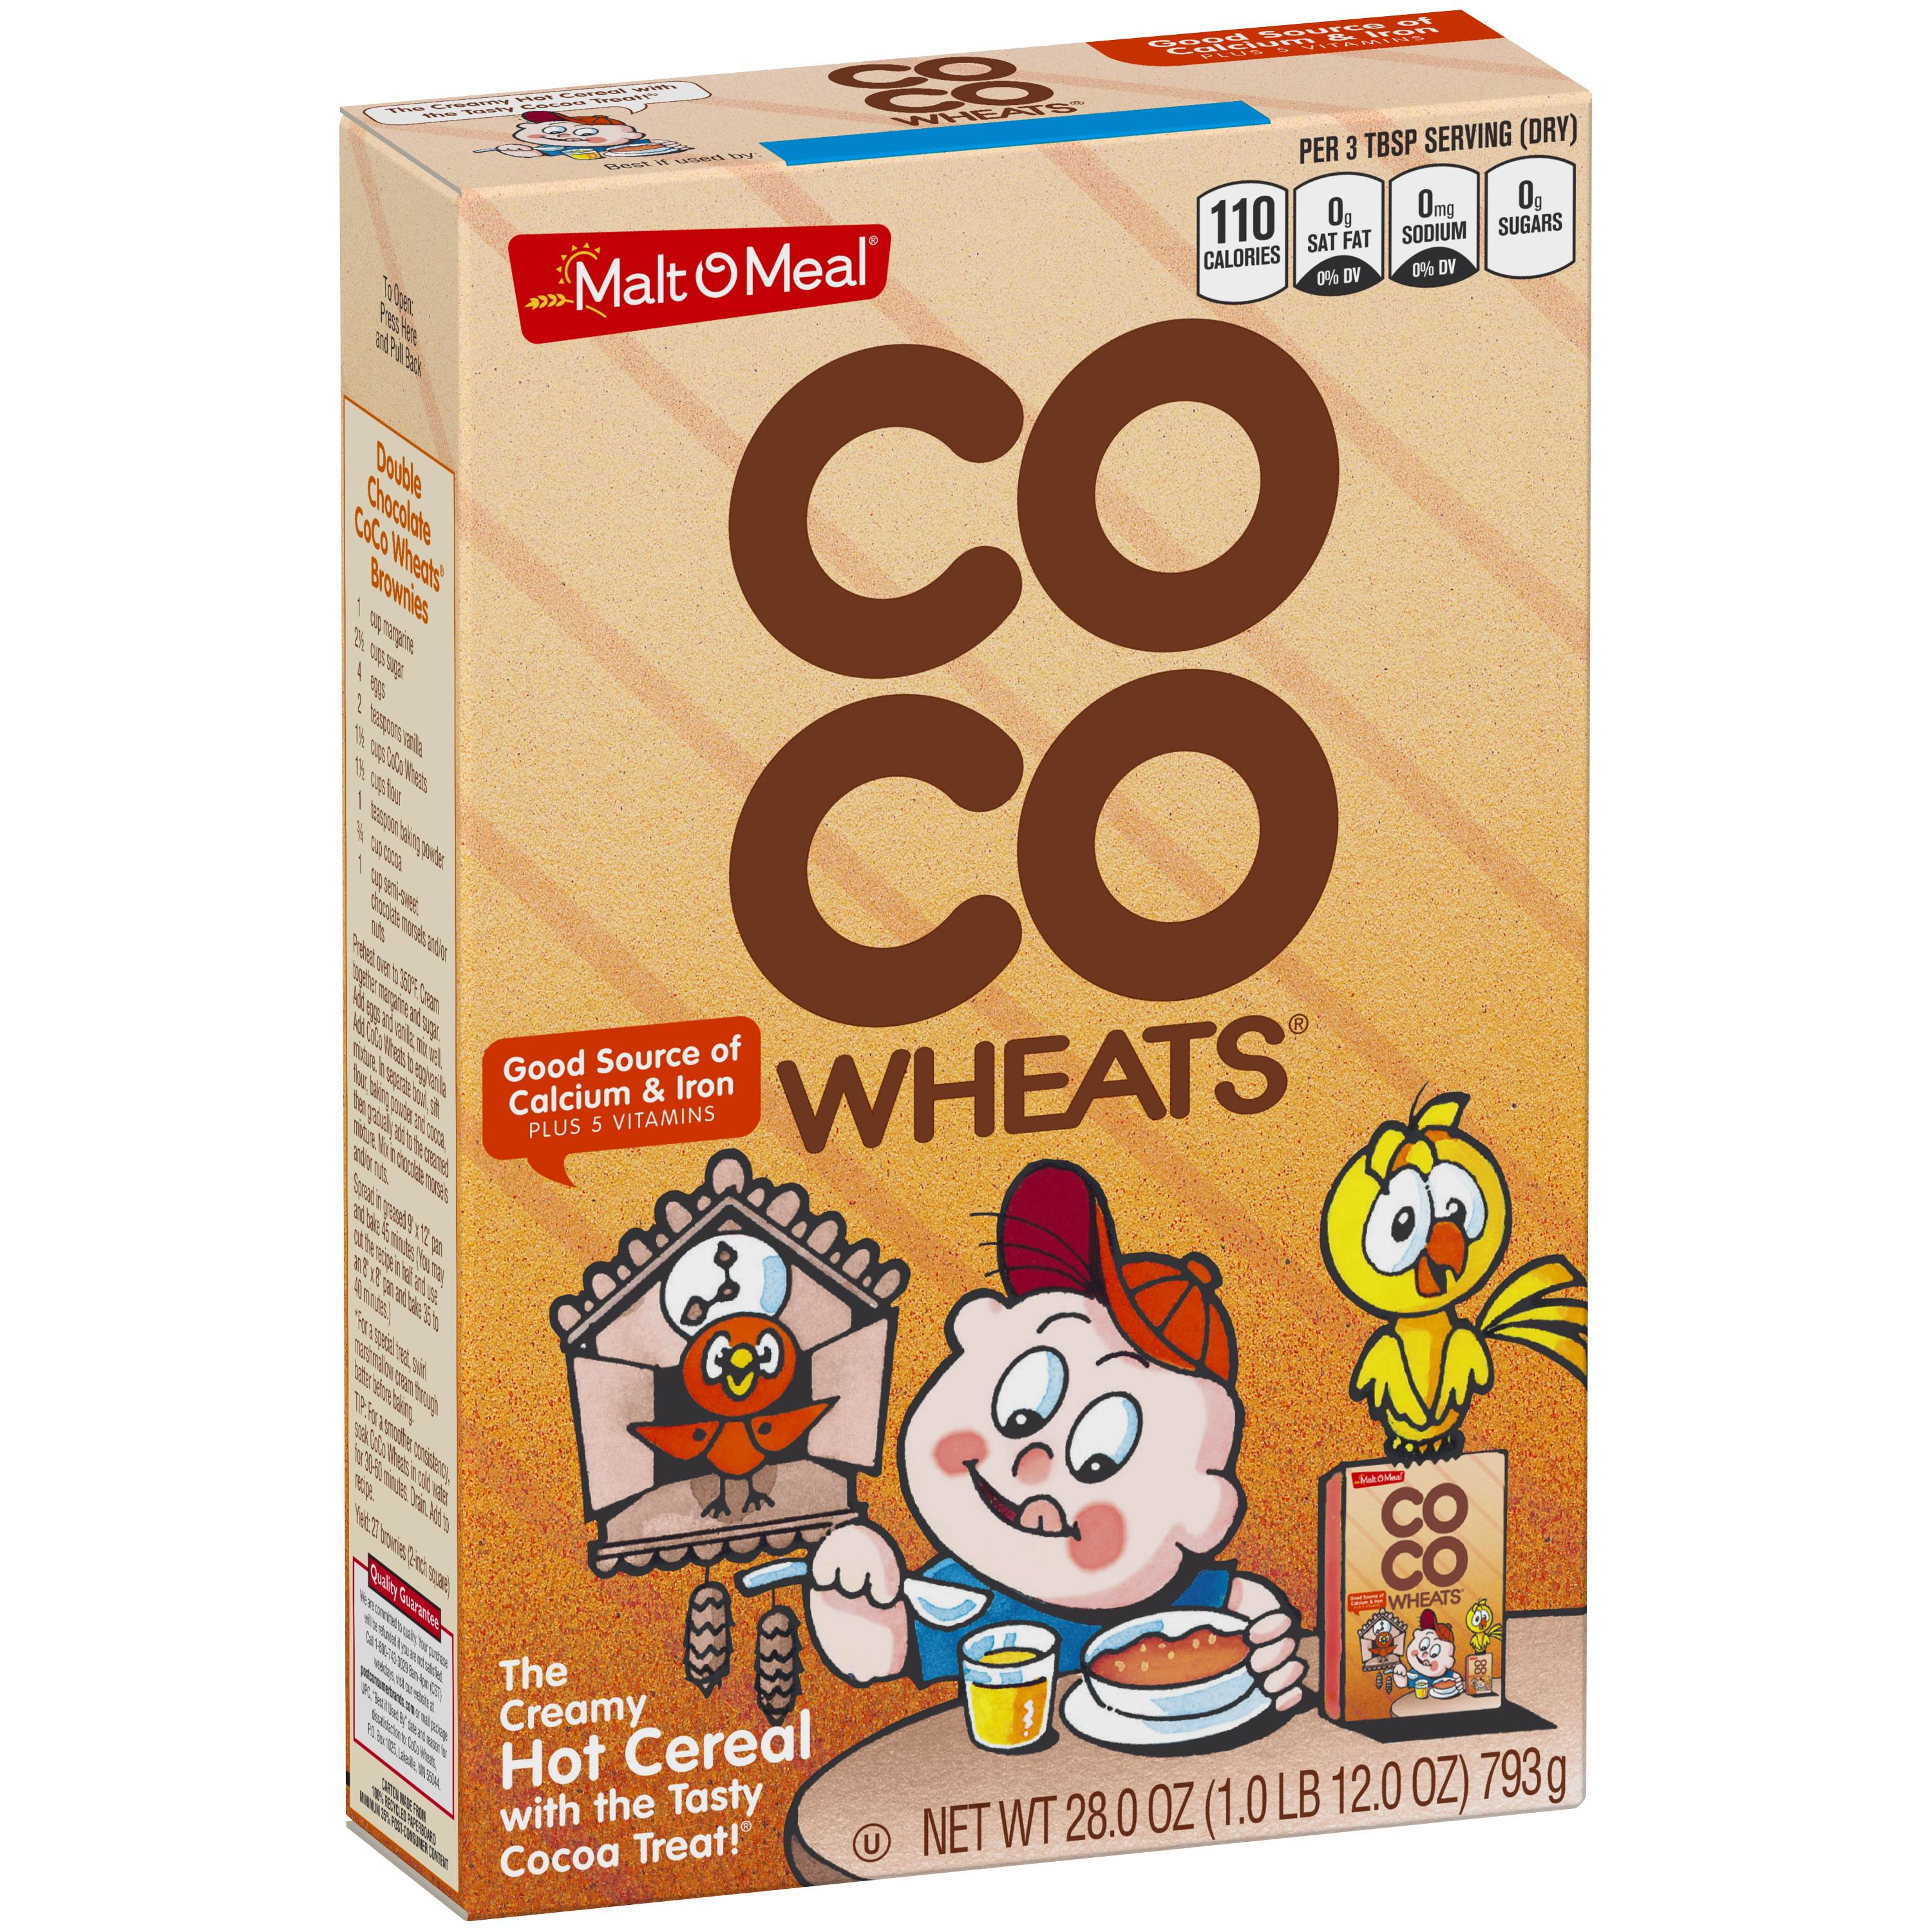 Malt-O-Meal Coco Wheats Hot Cereal, Chocolate Flavored, 28 Oz